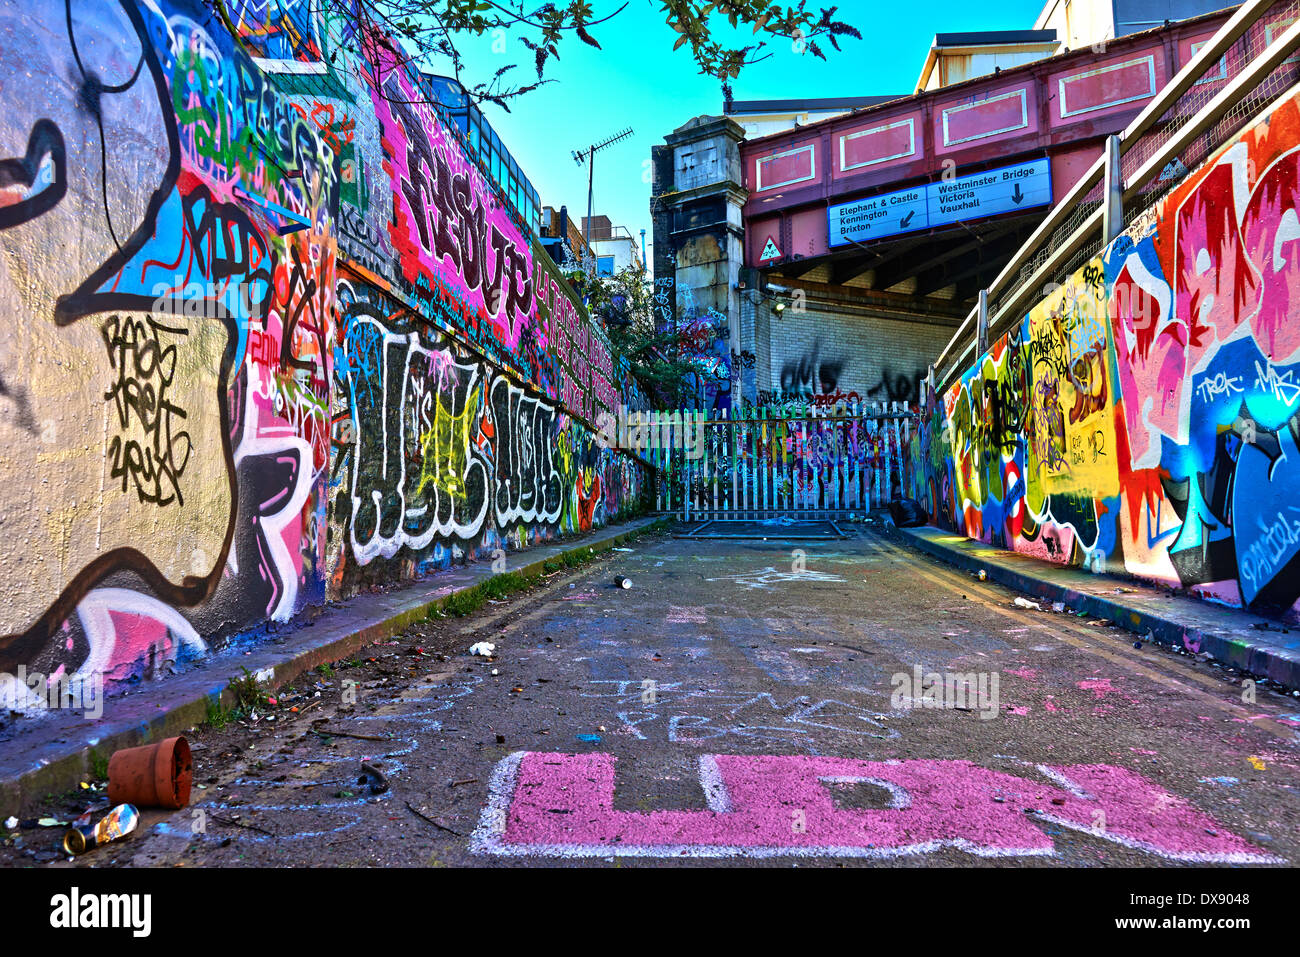 leake street auch bekannt als die banksy tunnel oder graffiti tunnel ist eine stra e in. Black Bedroom Furniture Sets. Home Design Ideas